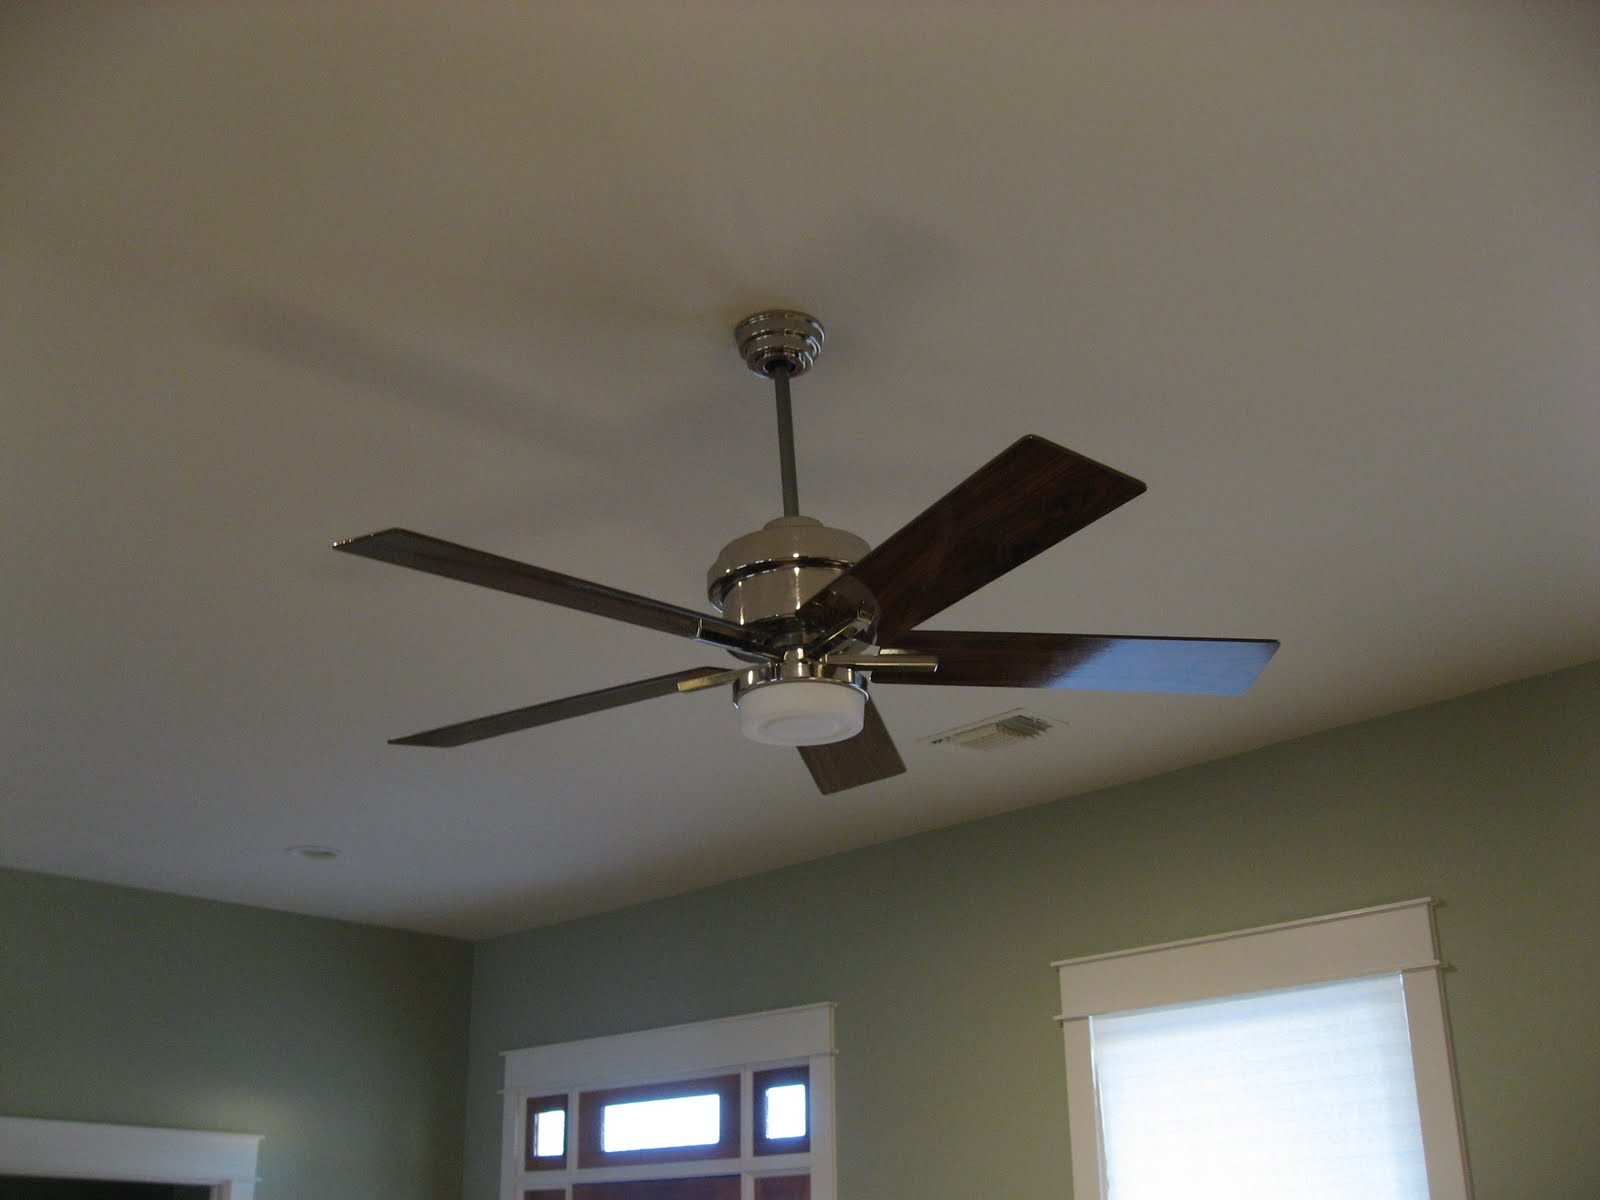 Green house good life why are ceiling fans always so ugly and then choosing fans like he chooses work pants all khaki all the time he picked the same one for the master bedroom publicscrutiny Choice Image